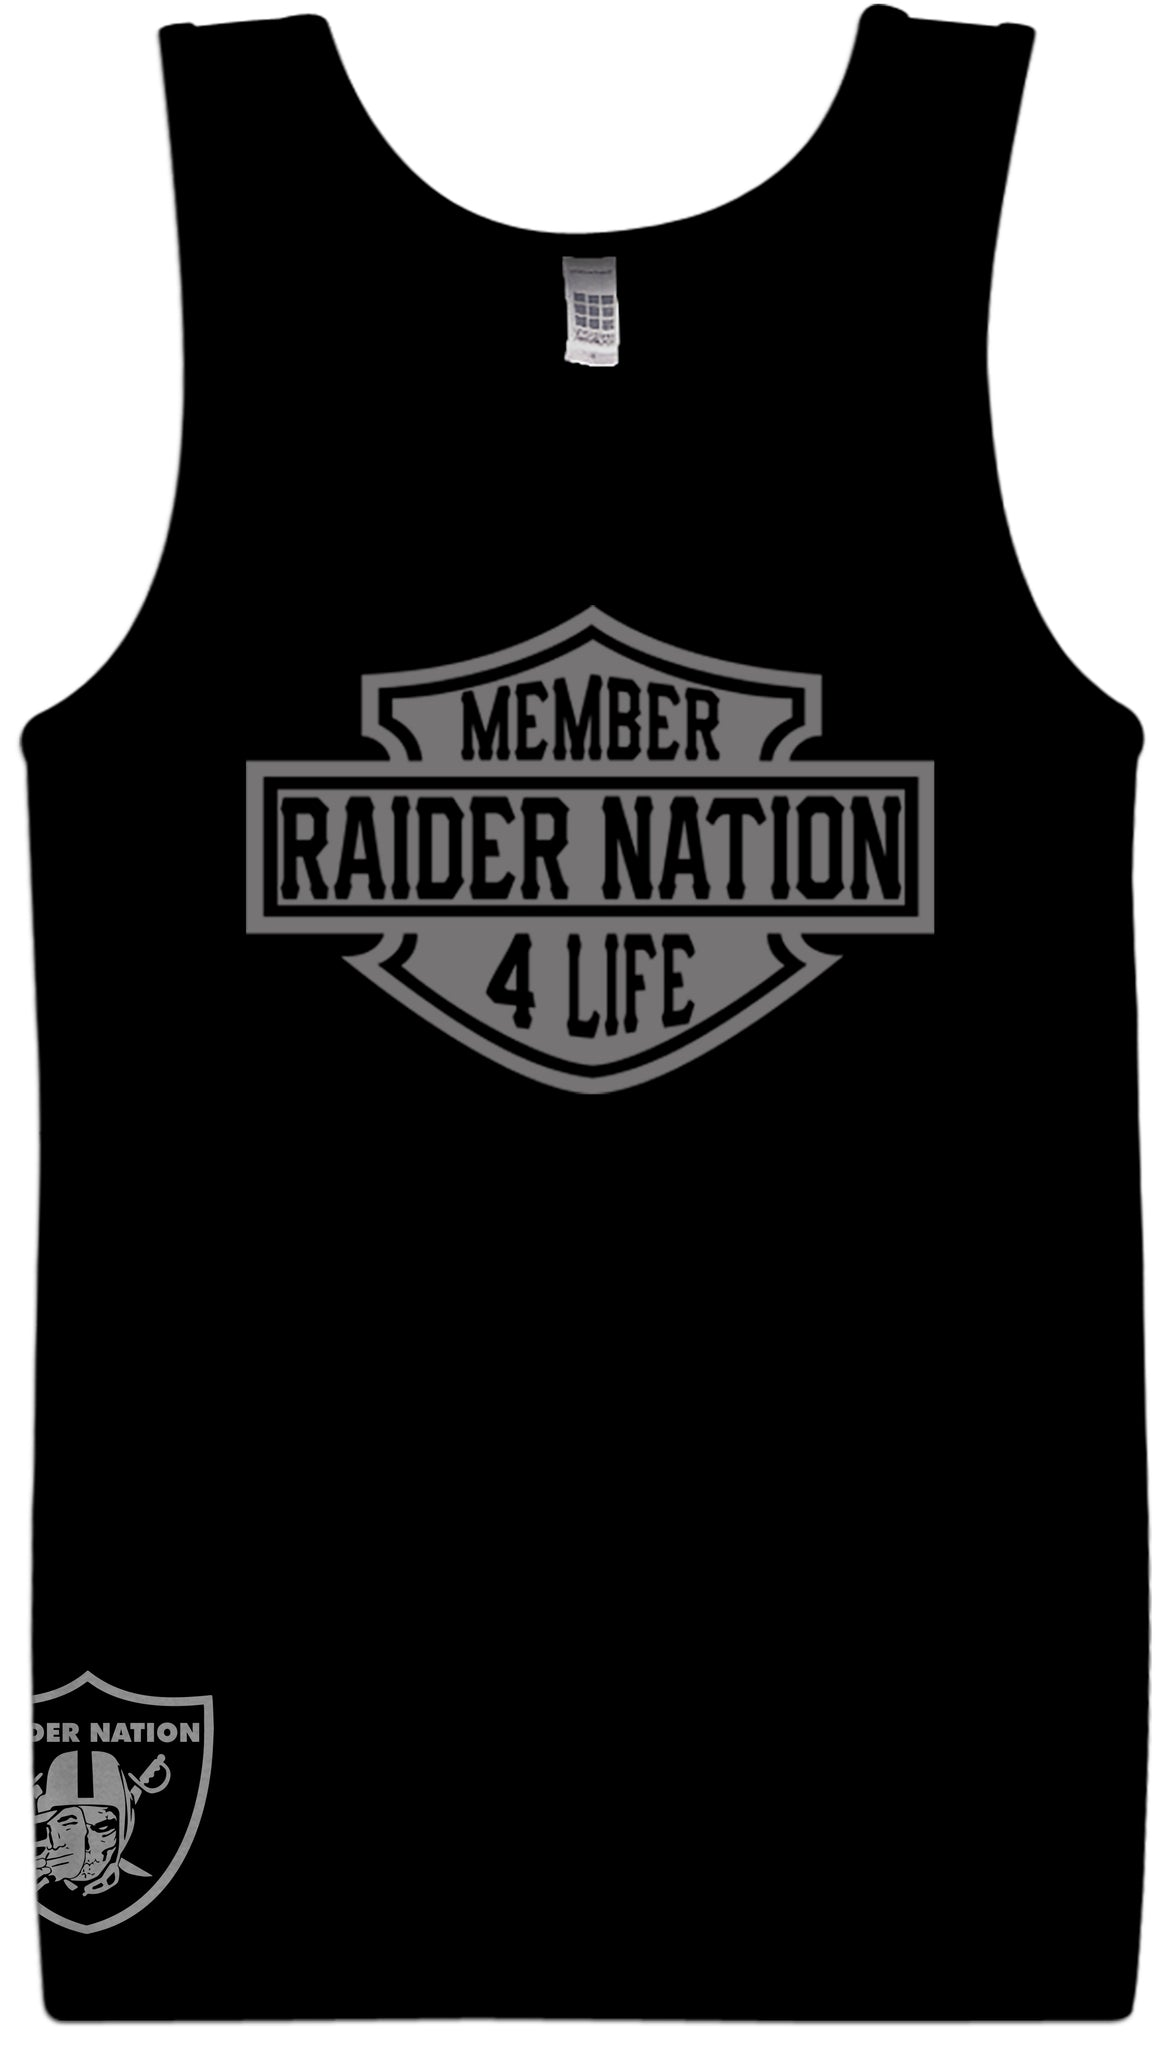 sneakers for cheap 4a179 41f6d MEMBER RAIDER NATION4 LIFE BLACK TANK TOP (LIMITED EDITION) OAKLAND RAIDERS